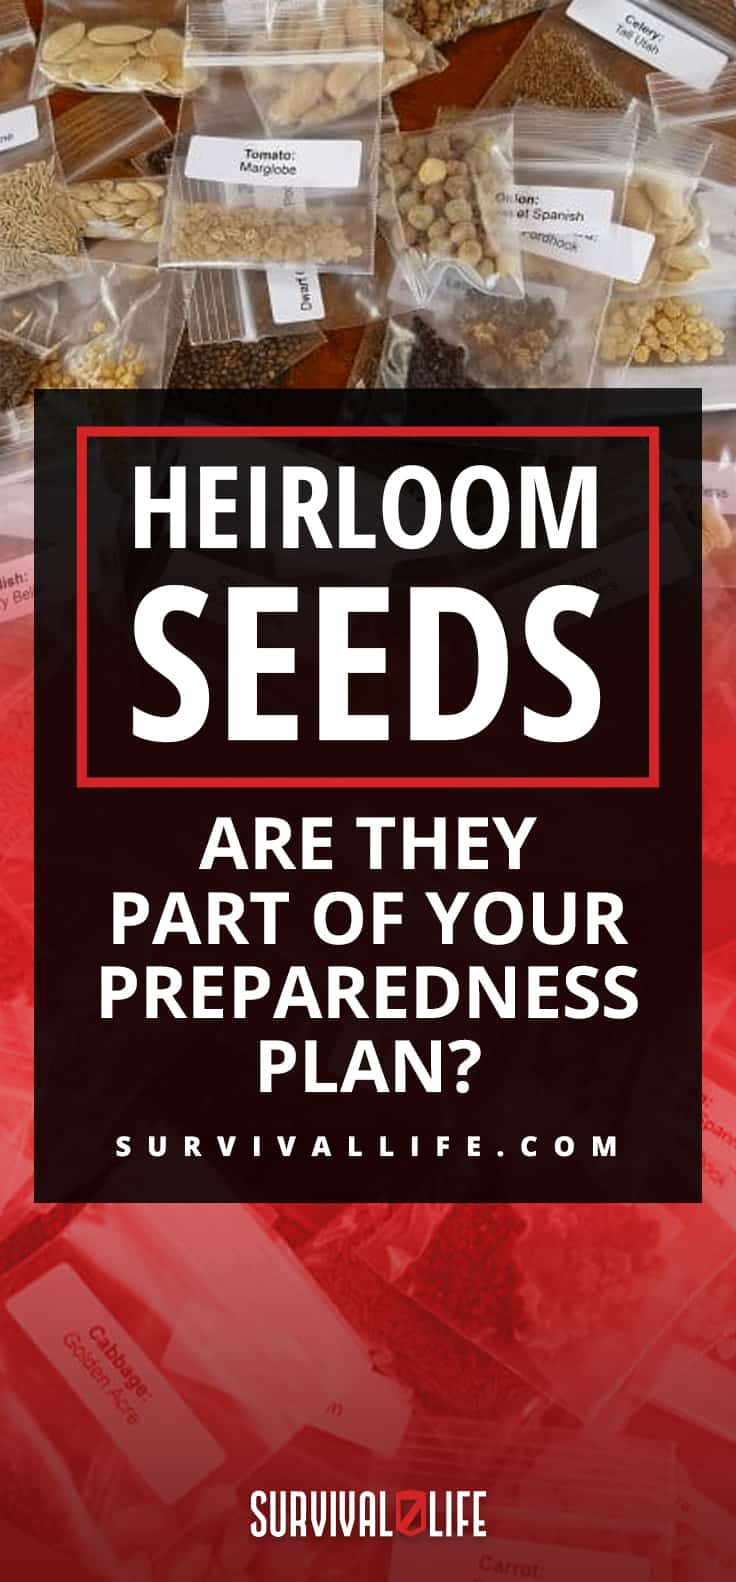 Heirloom Seeds | Heirloom Seeds: Are They Part Of Your Preparedness Plan?